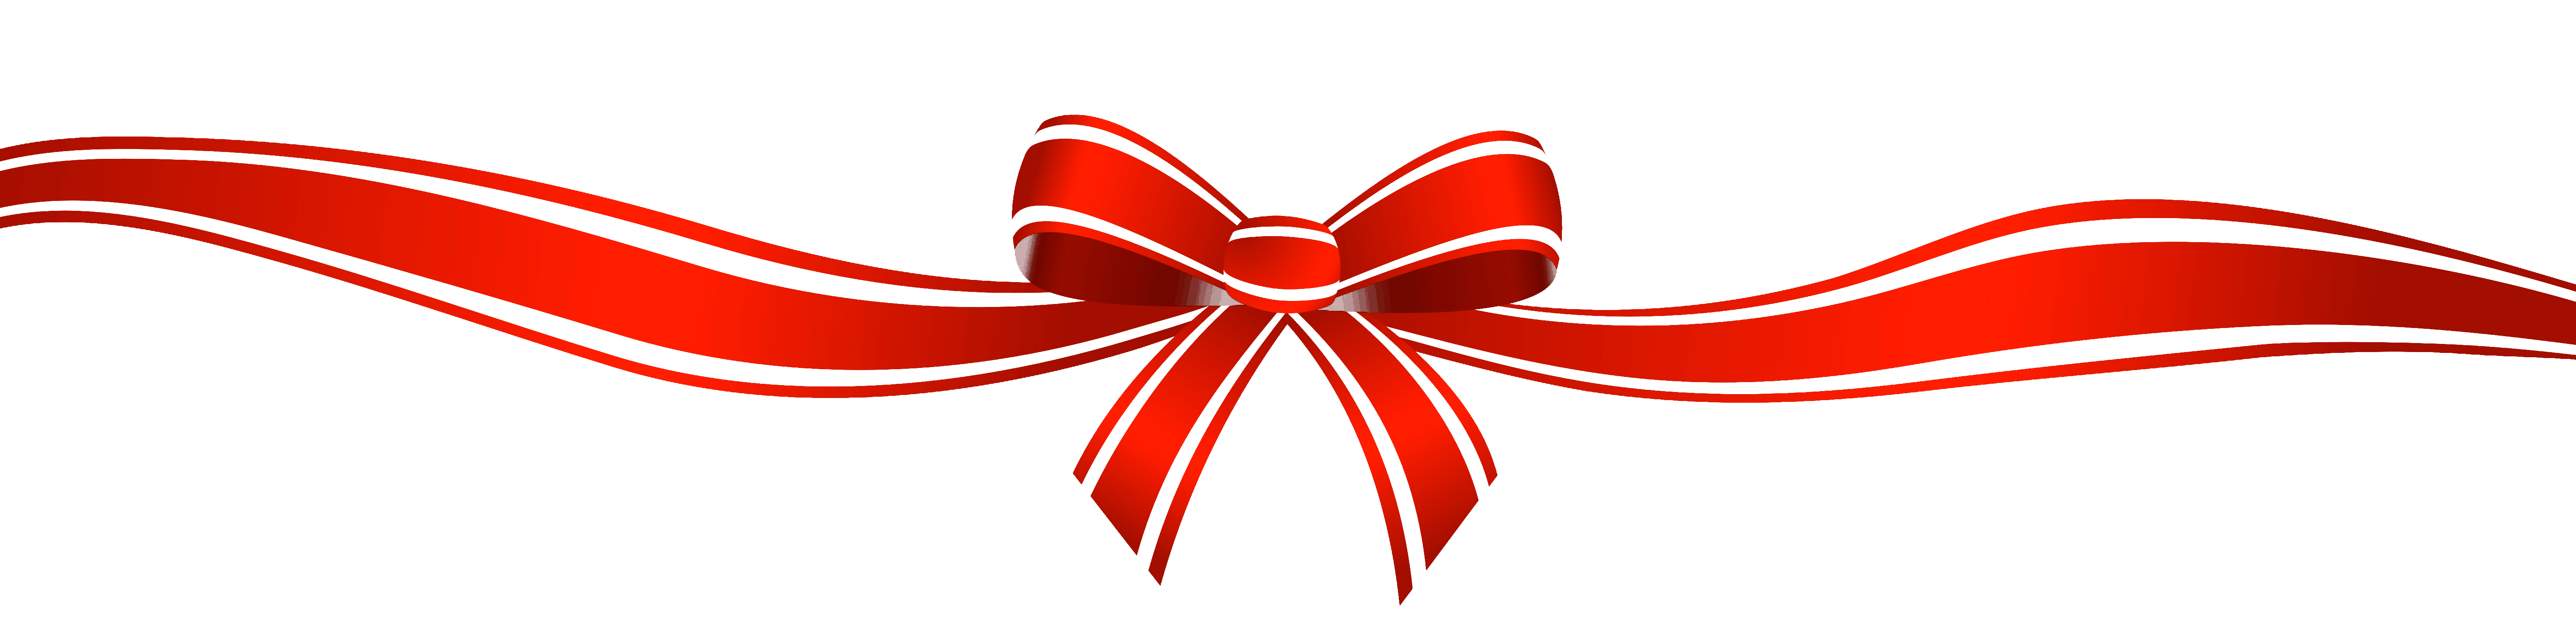 Gift Ribbon Png - ClipArt Best